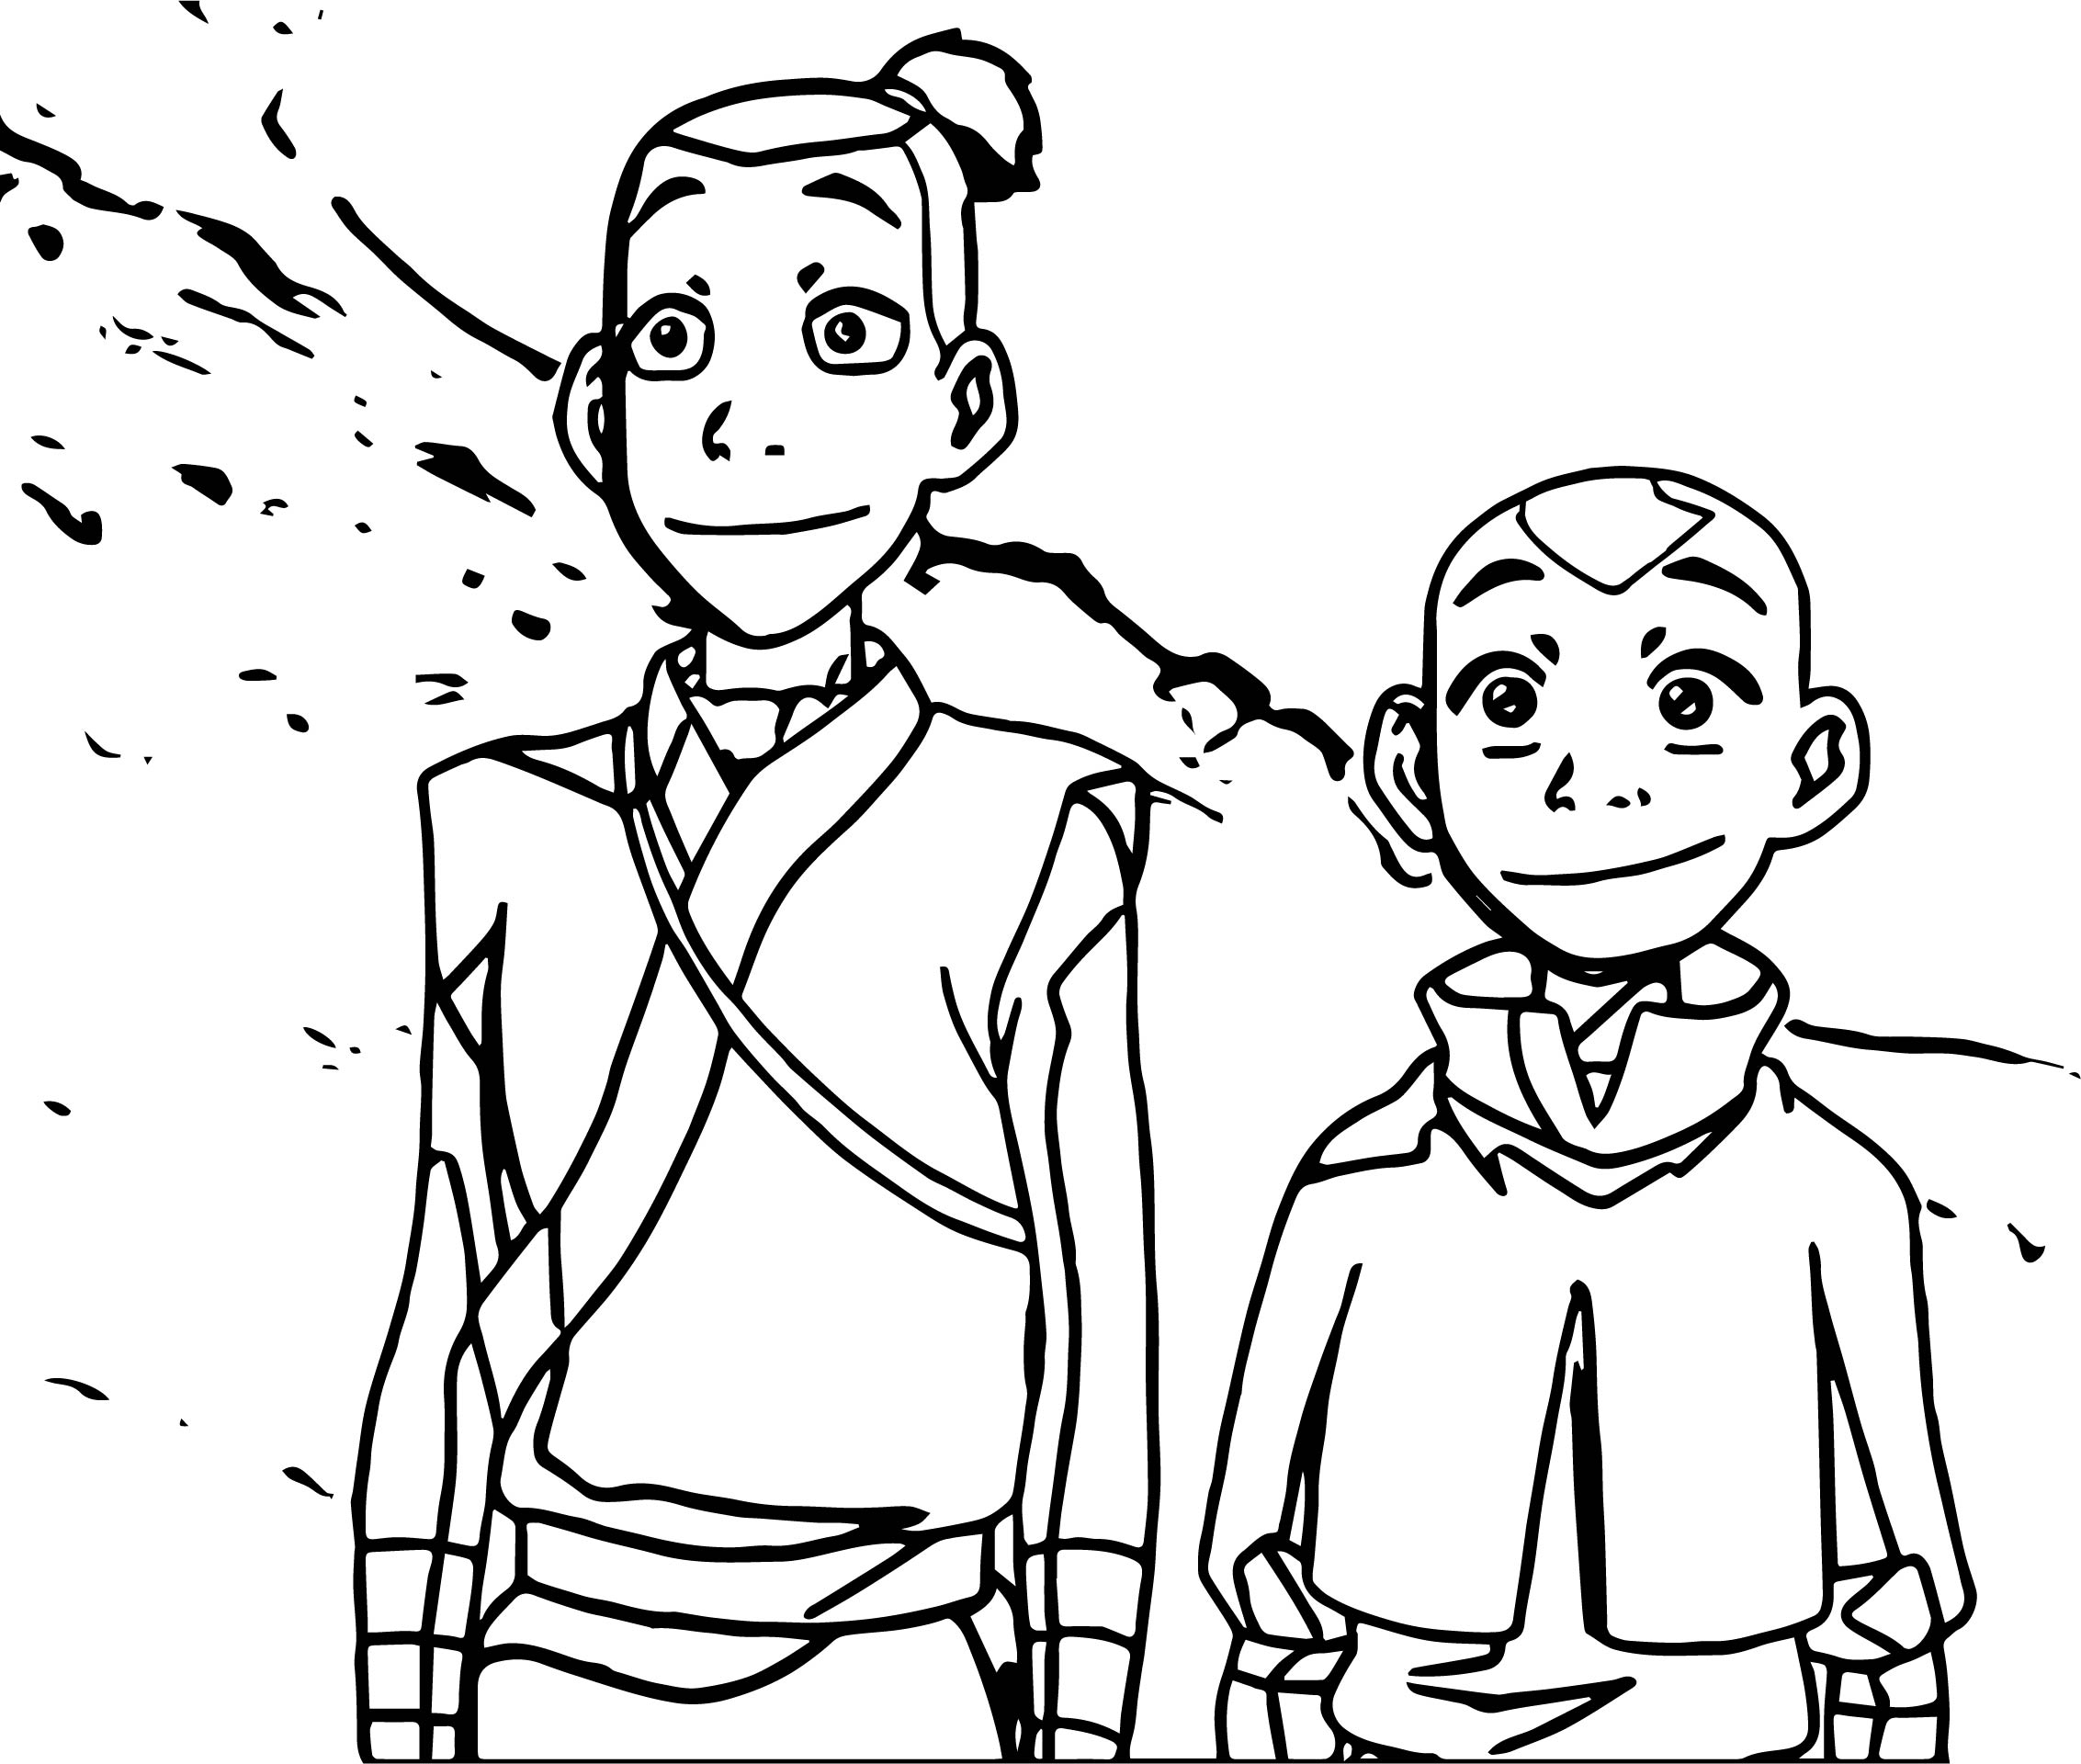 aang and sokka avatar the last airbender avatar aang coloring page